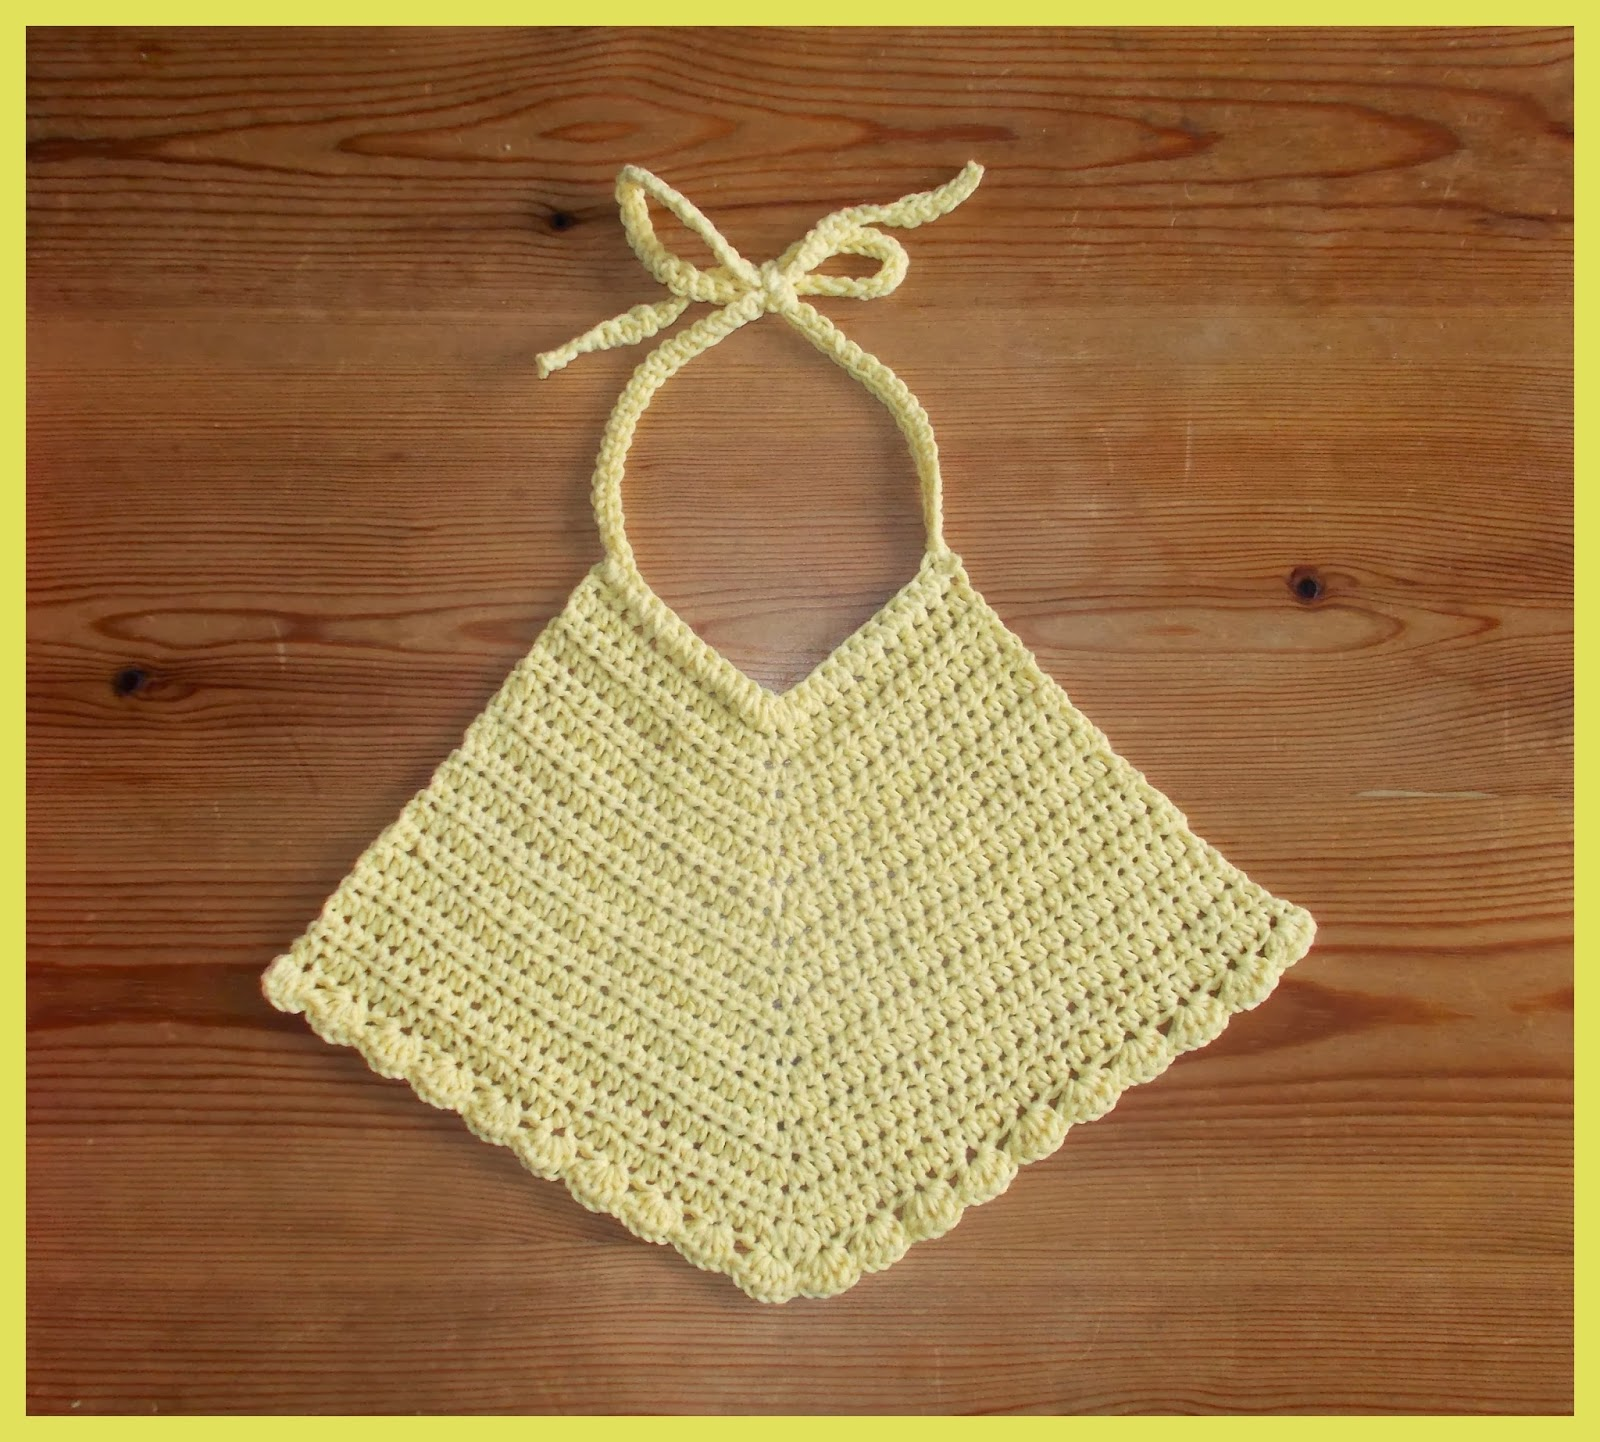 mariannas lazy daisy days: Pretty Crochet Baby Bibs in ...